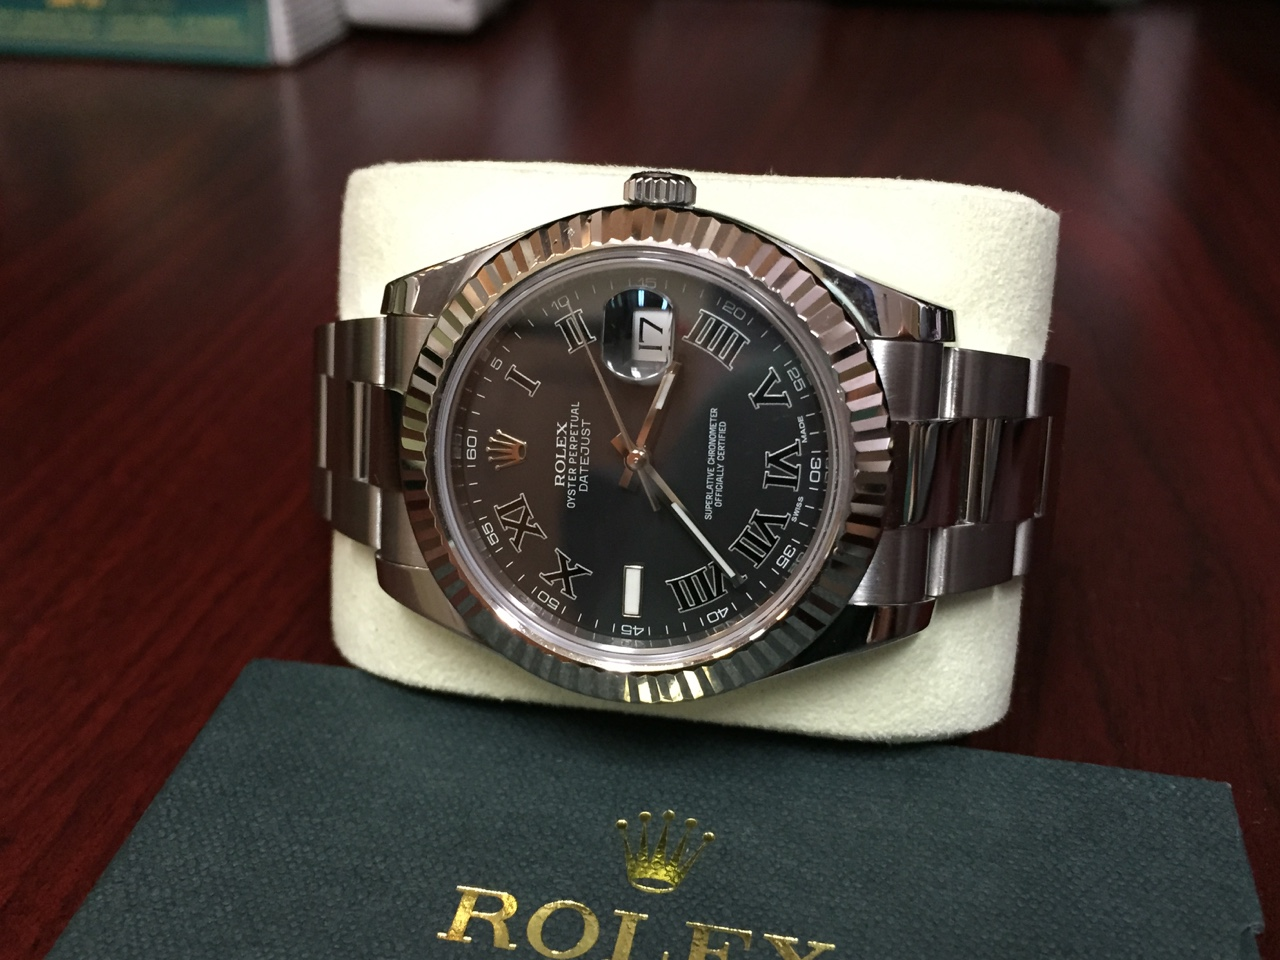 Rolex Datejust II with Box & Papers - $5,900